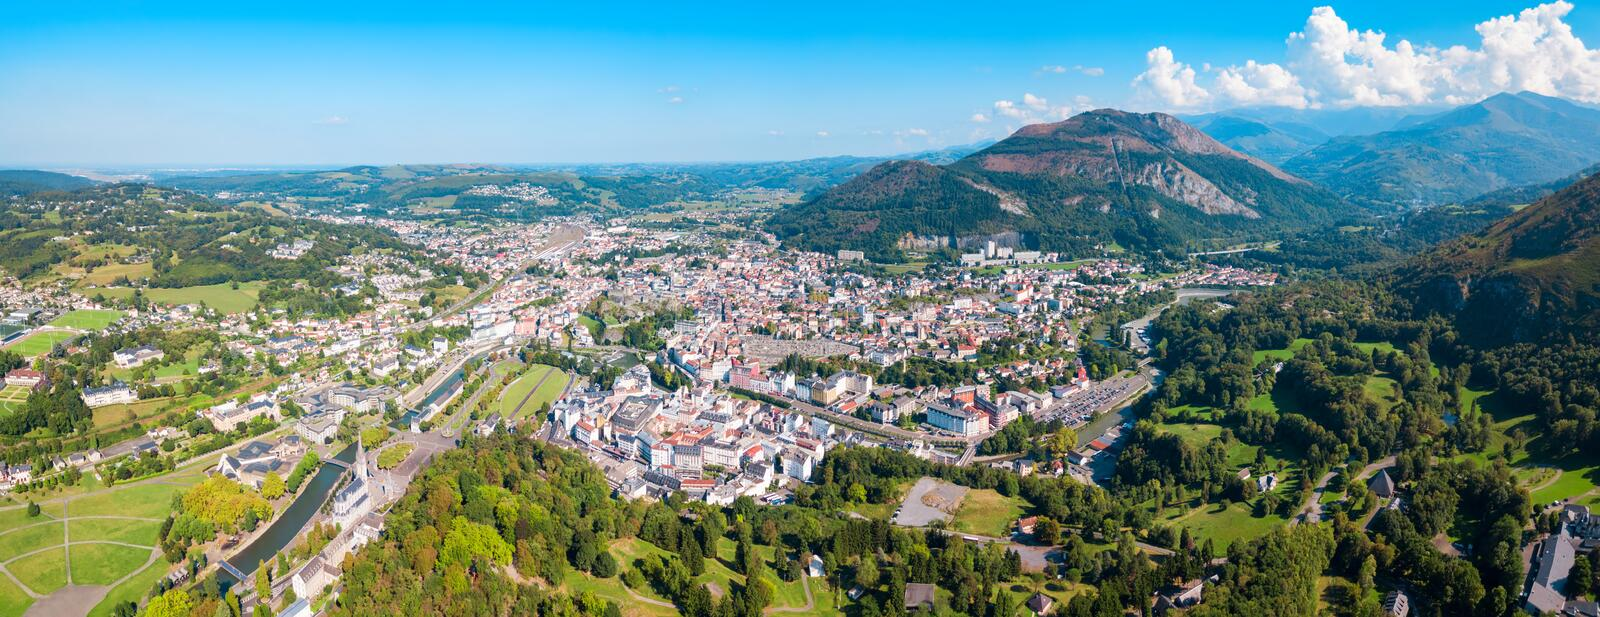 Lourdes small town in France stock image